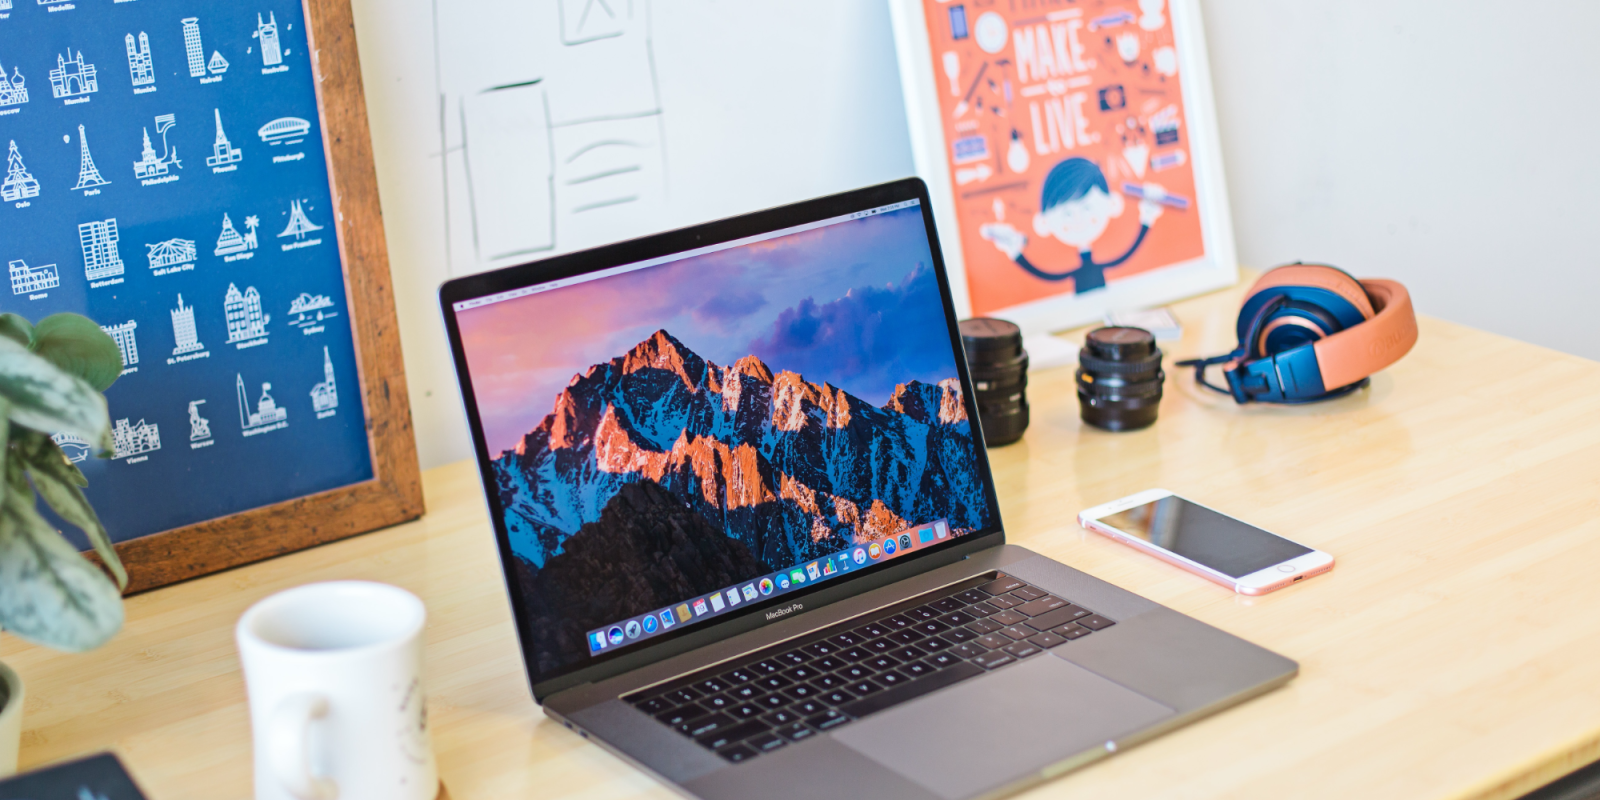 iOS and macOS tips and tricks to assist friends and family during Thanksgiving